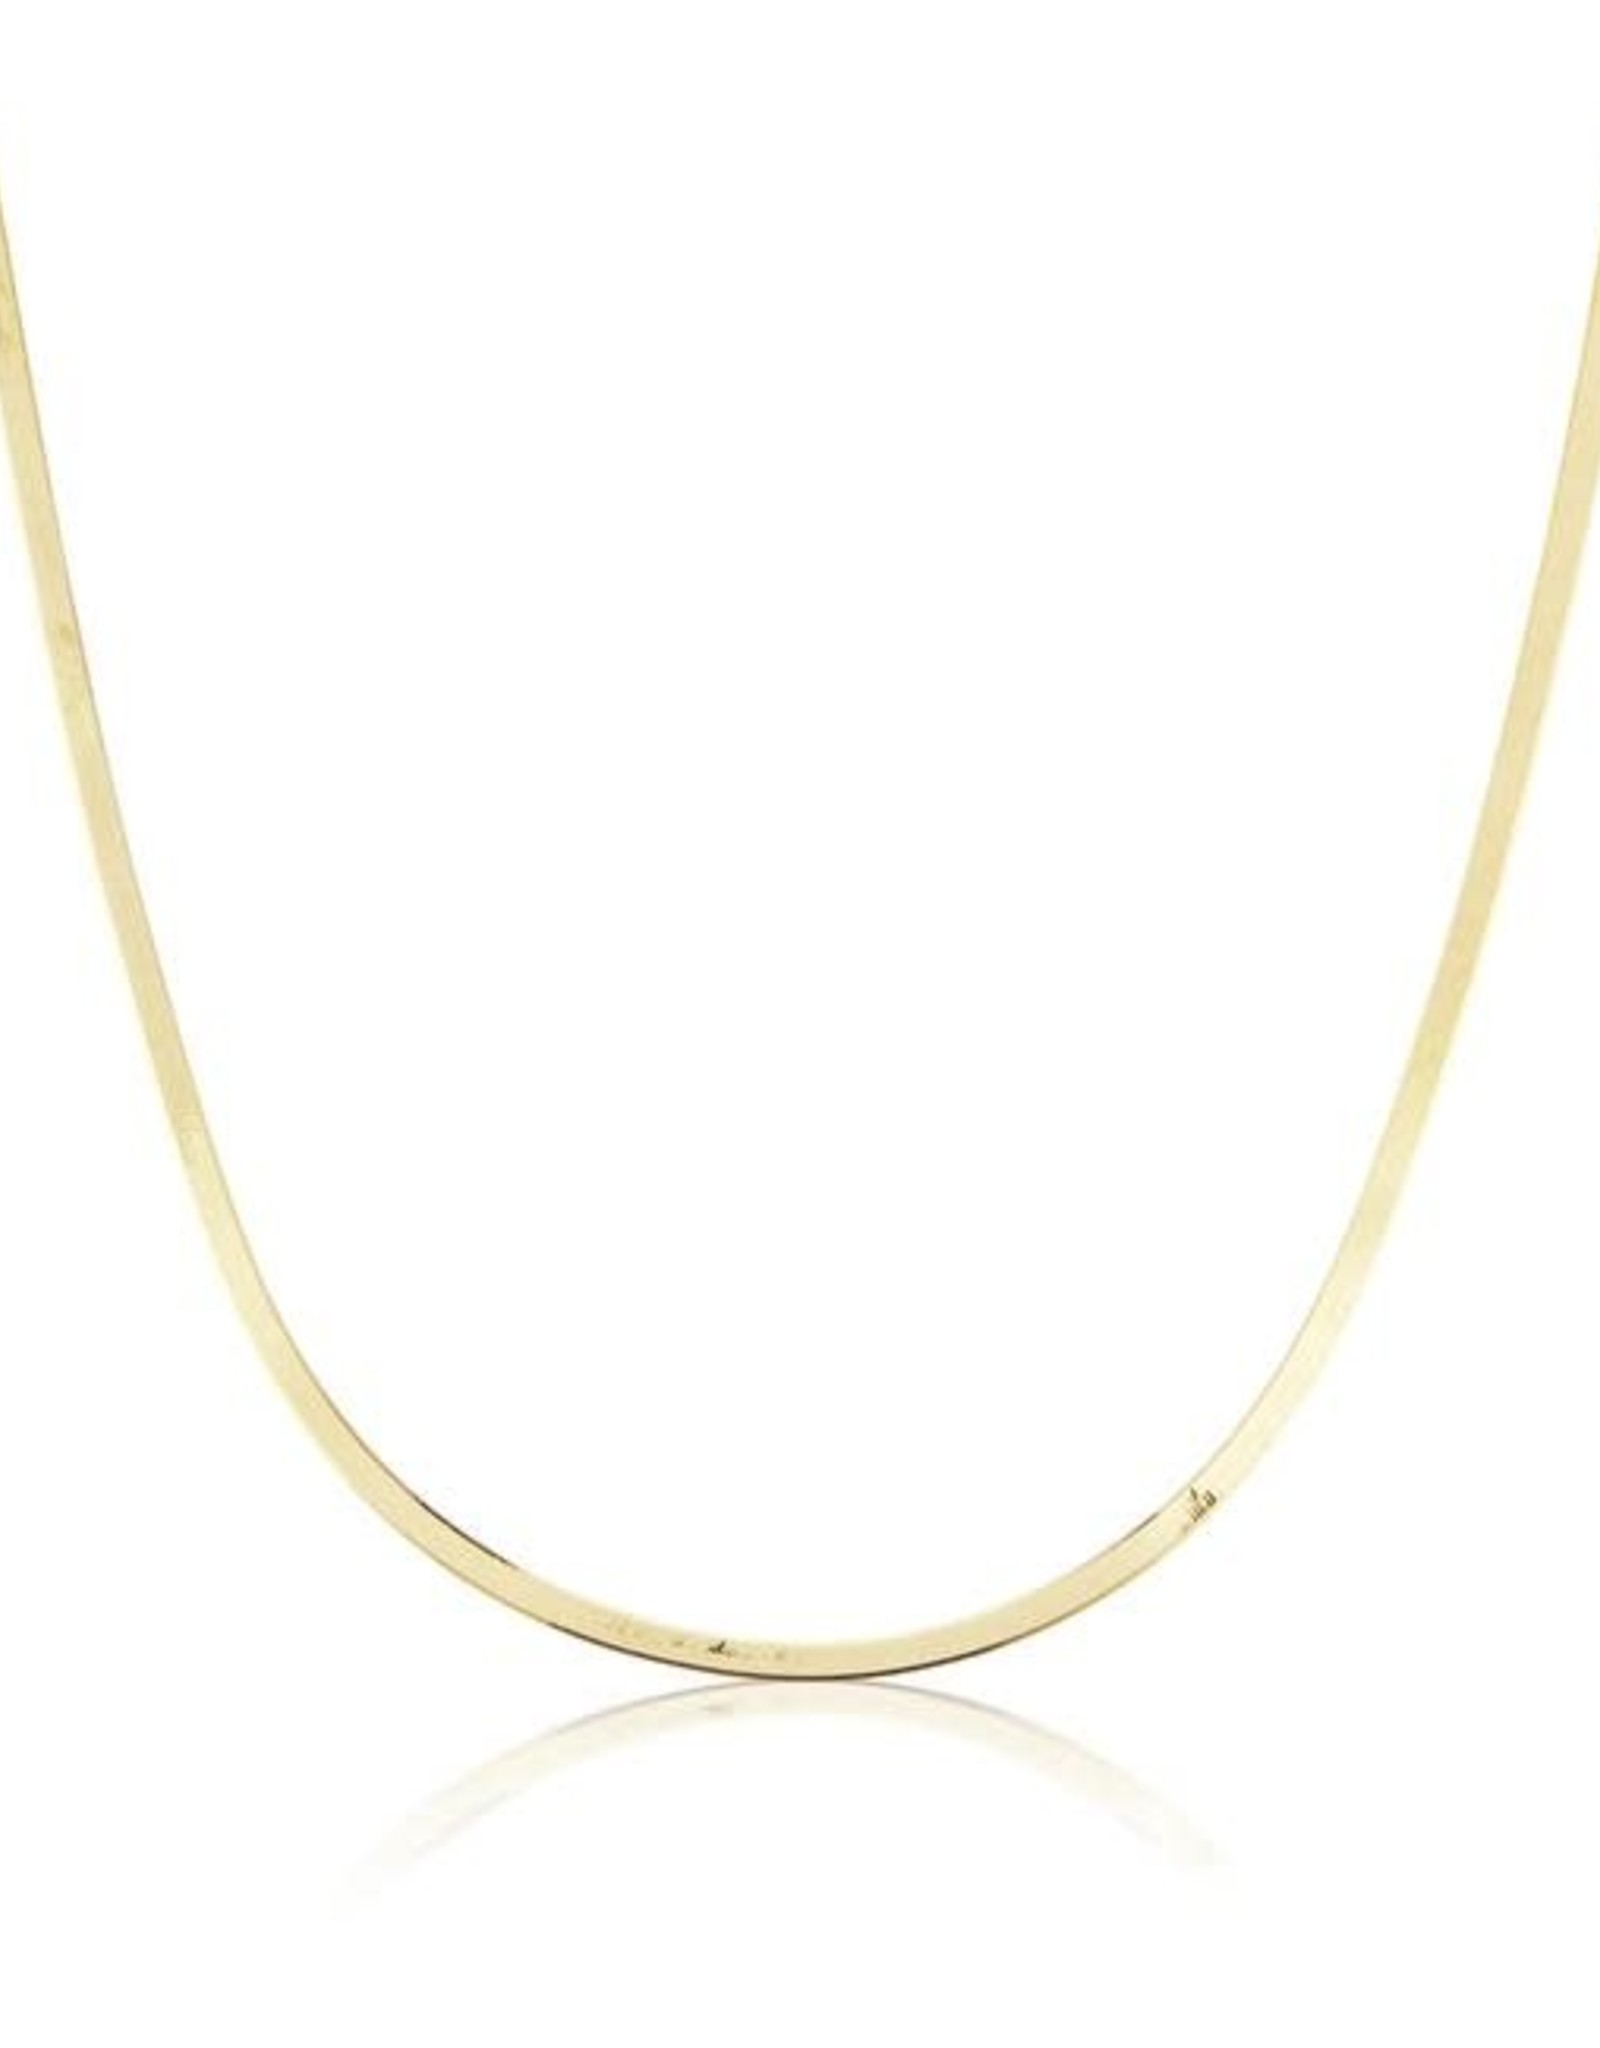 KBH Jewels Liquid Gold Herringbone Necklace